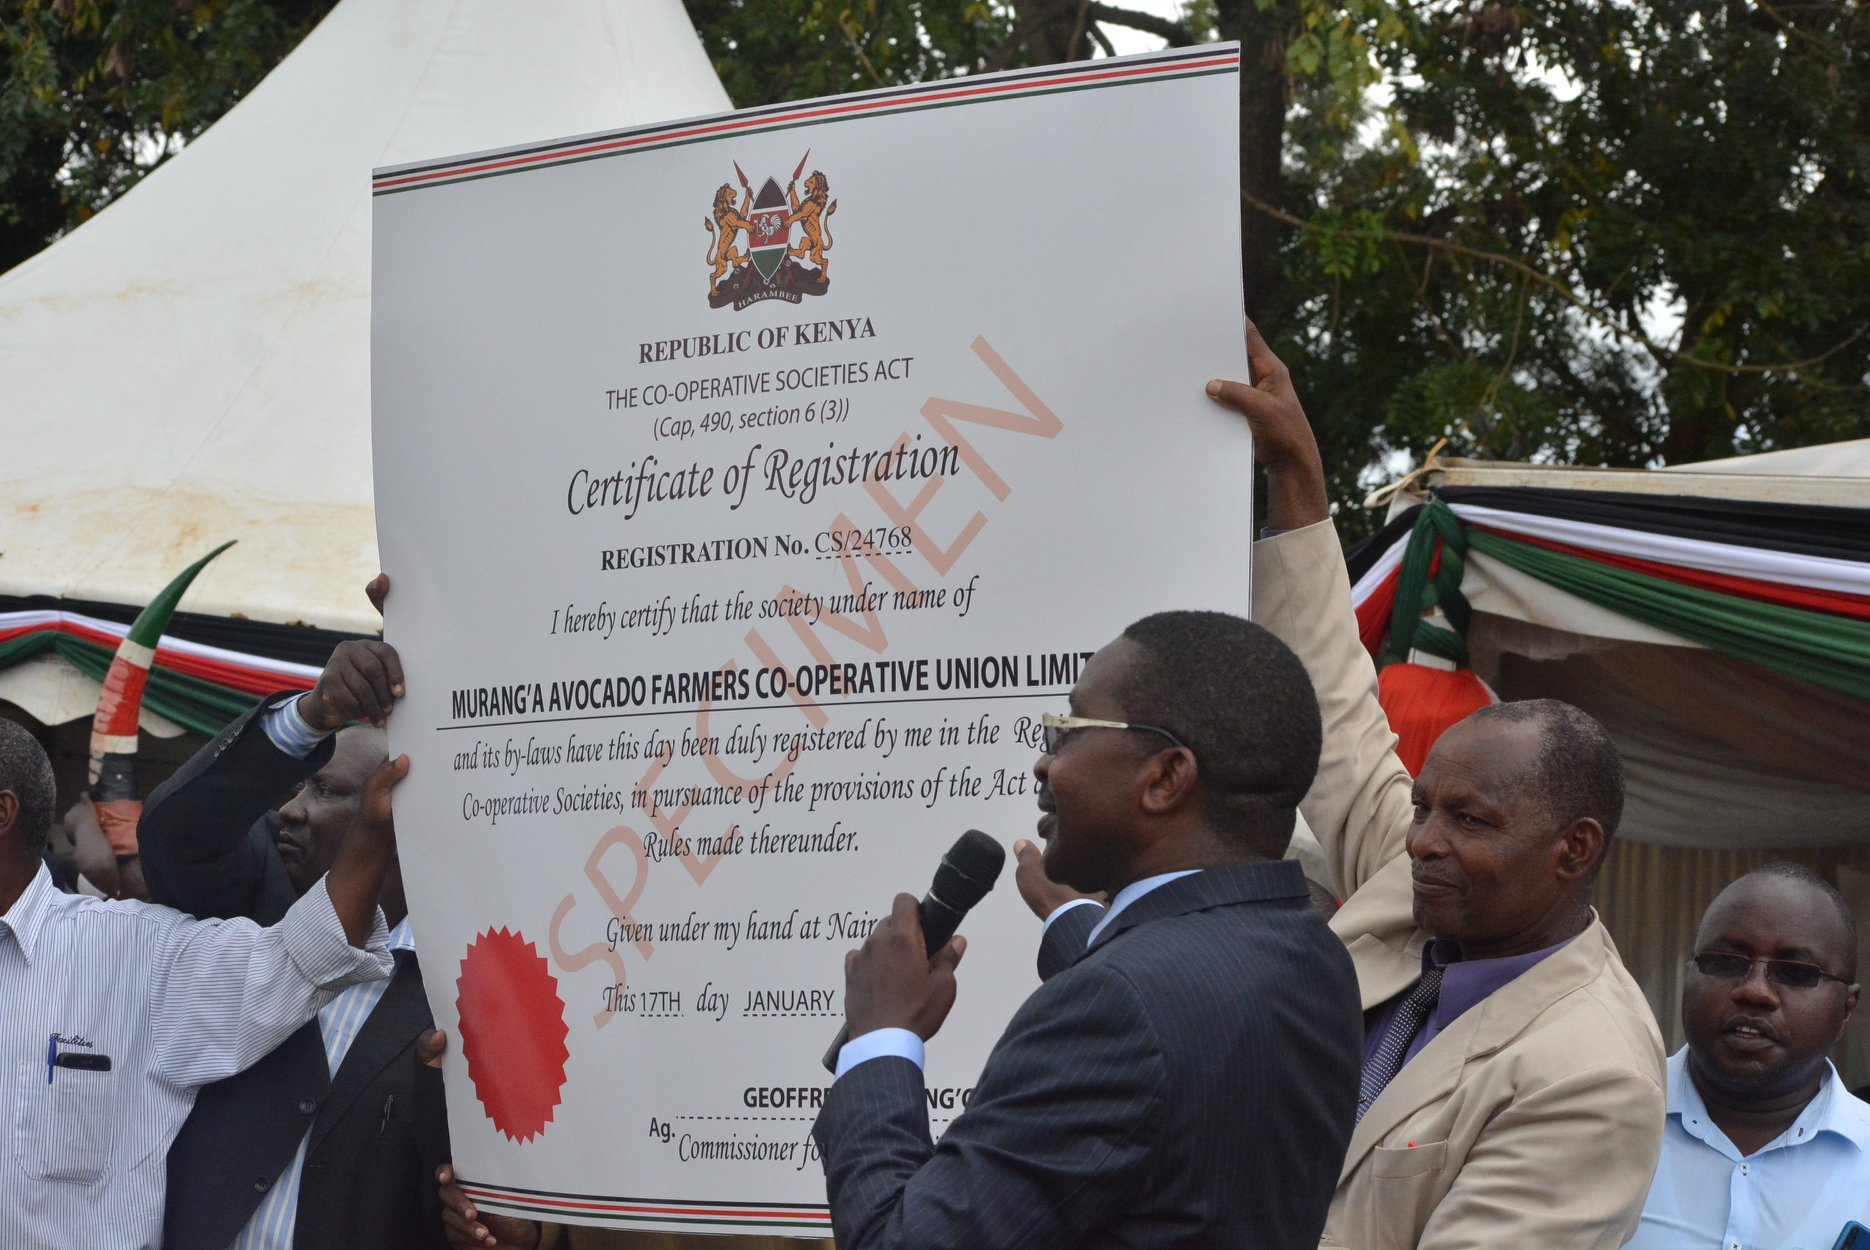 The Murang'a Avocado Farmer's Co-operative Union Launch